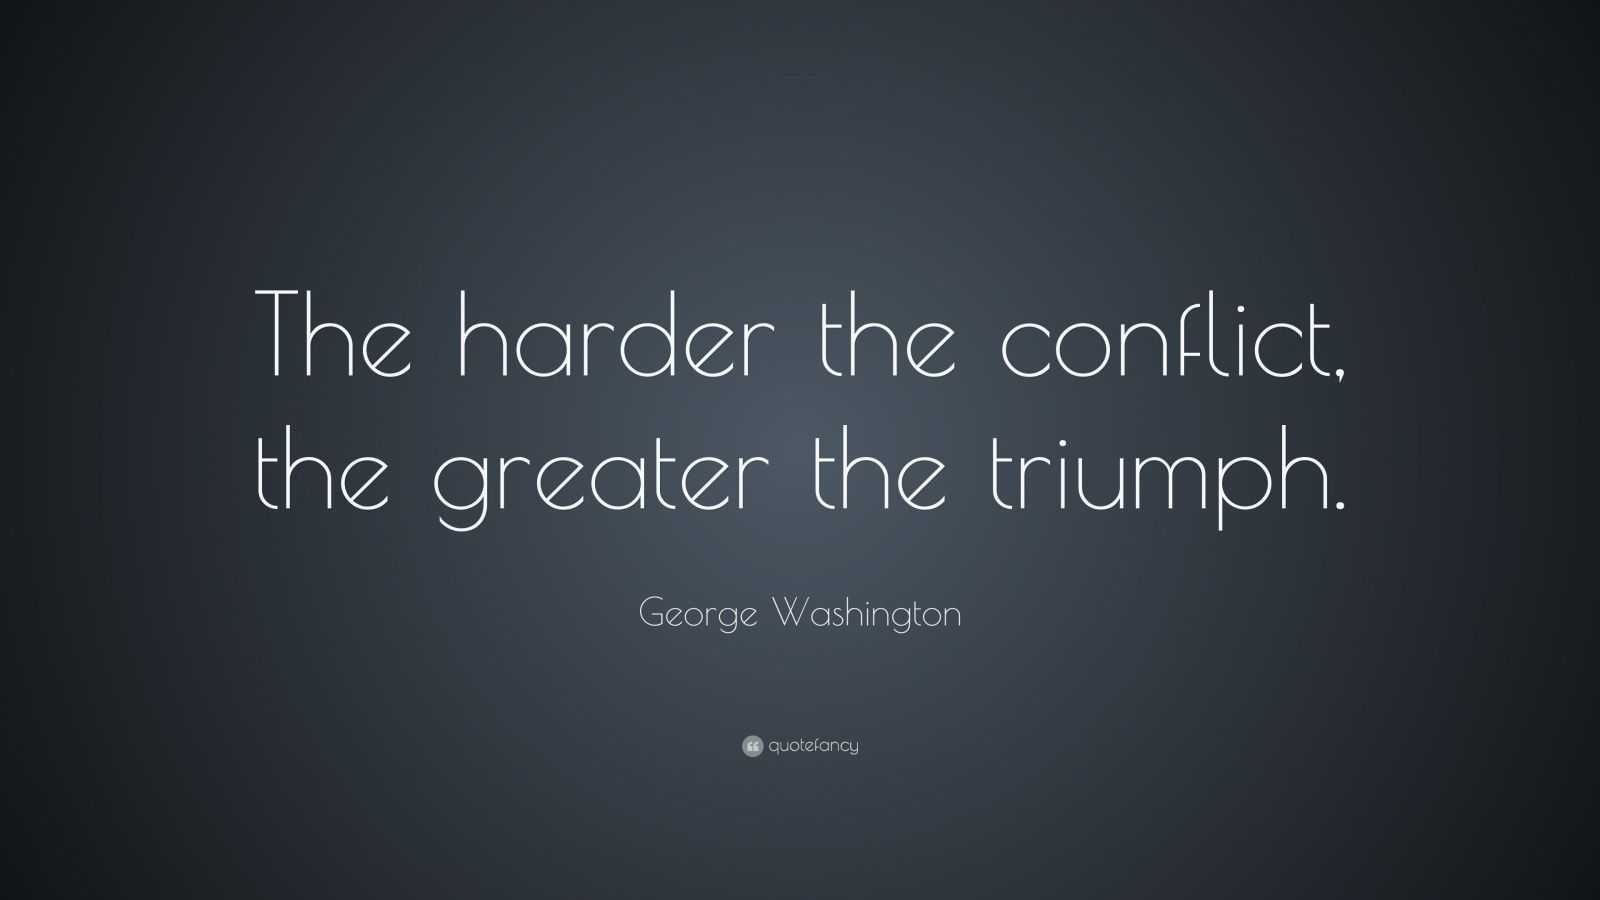 Quotes About George Washington George Washington Quotes 100 Wallpapers  Quotefancy